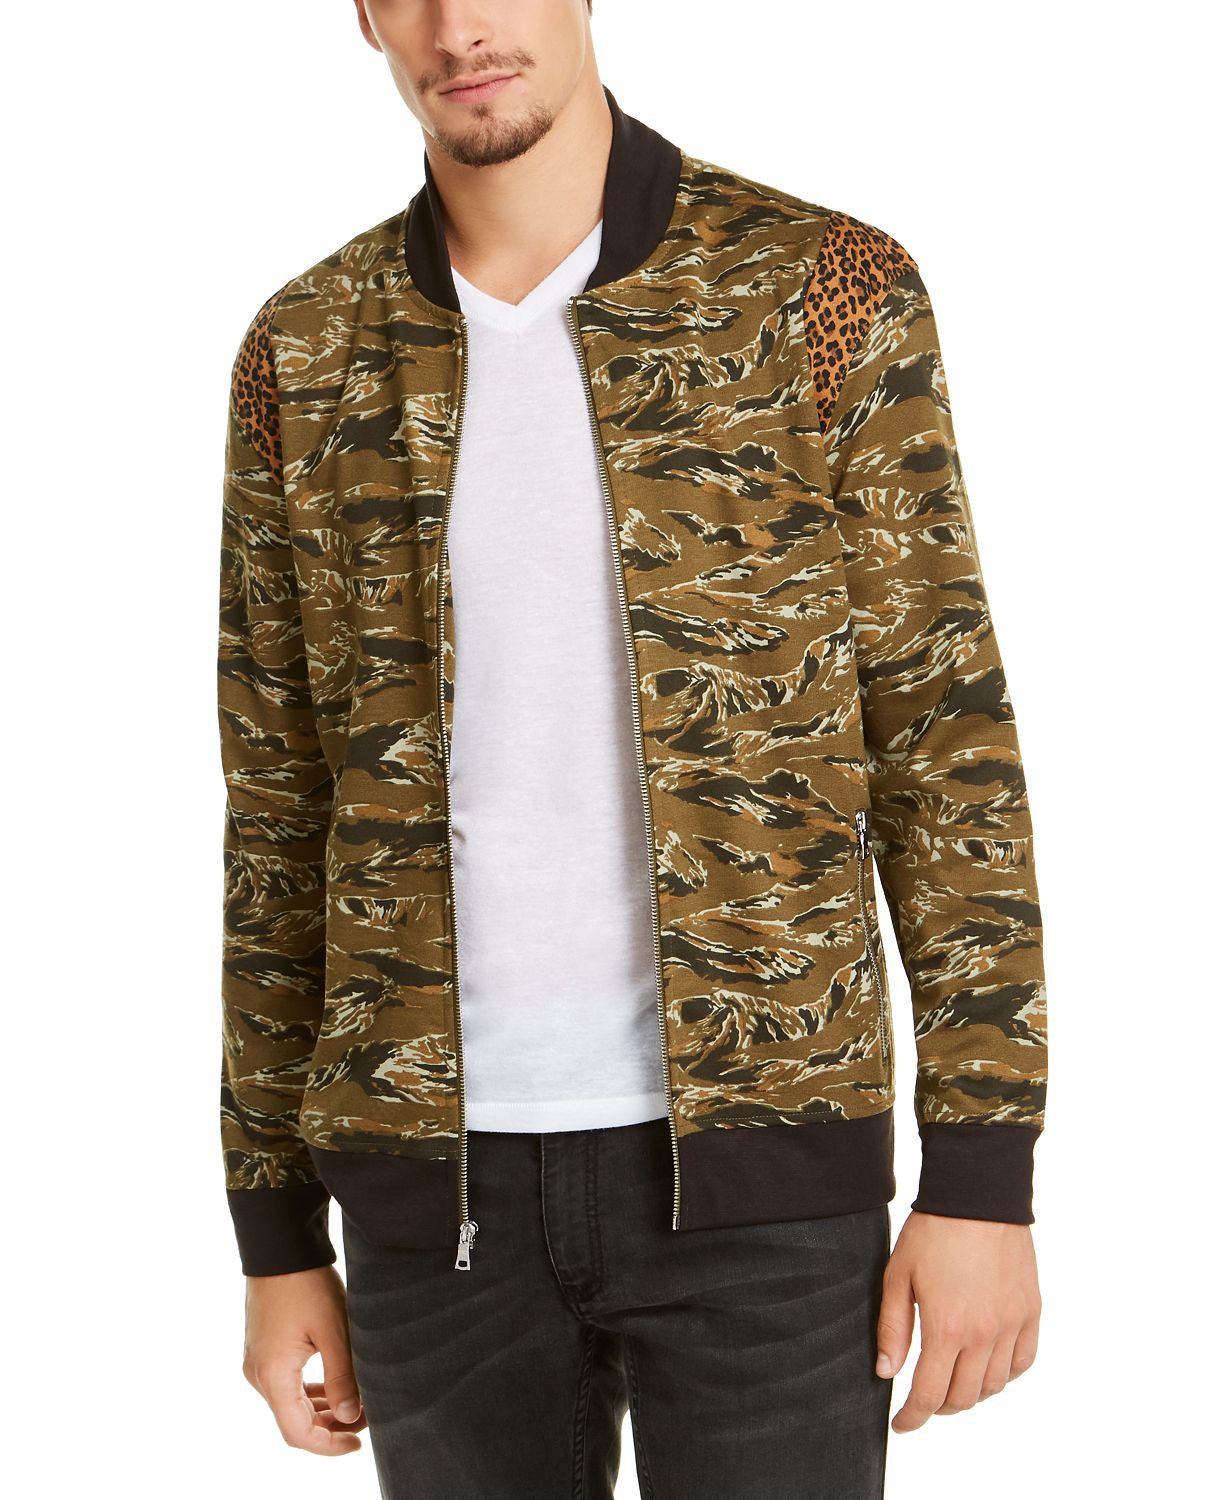 Inc International Concepts Vices Abstract Camouflage Print Bomber Jacket Dark Olive